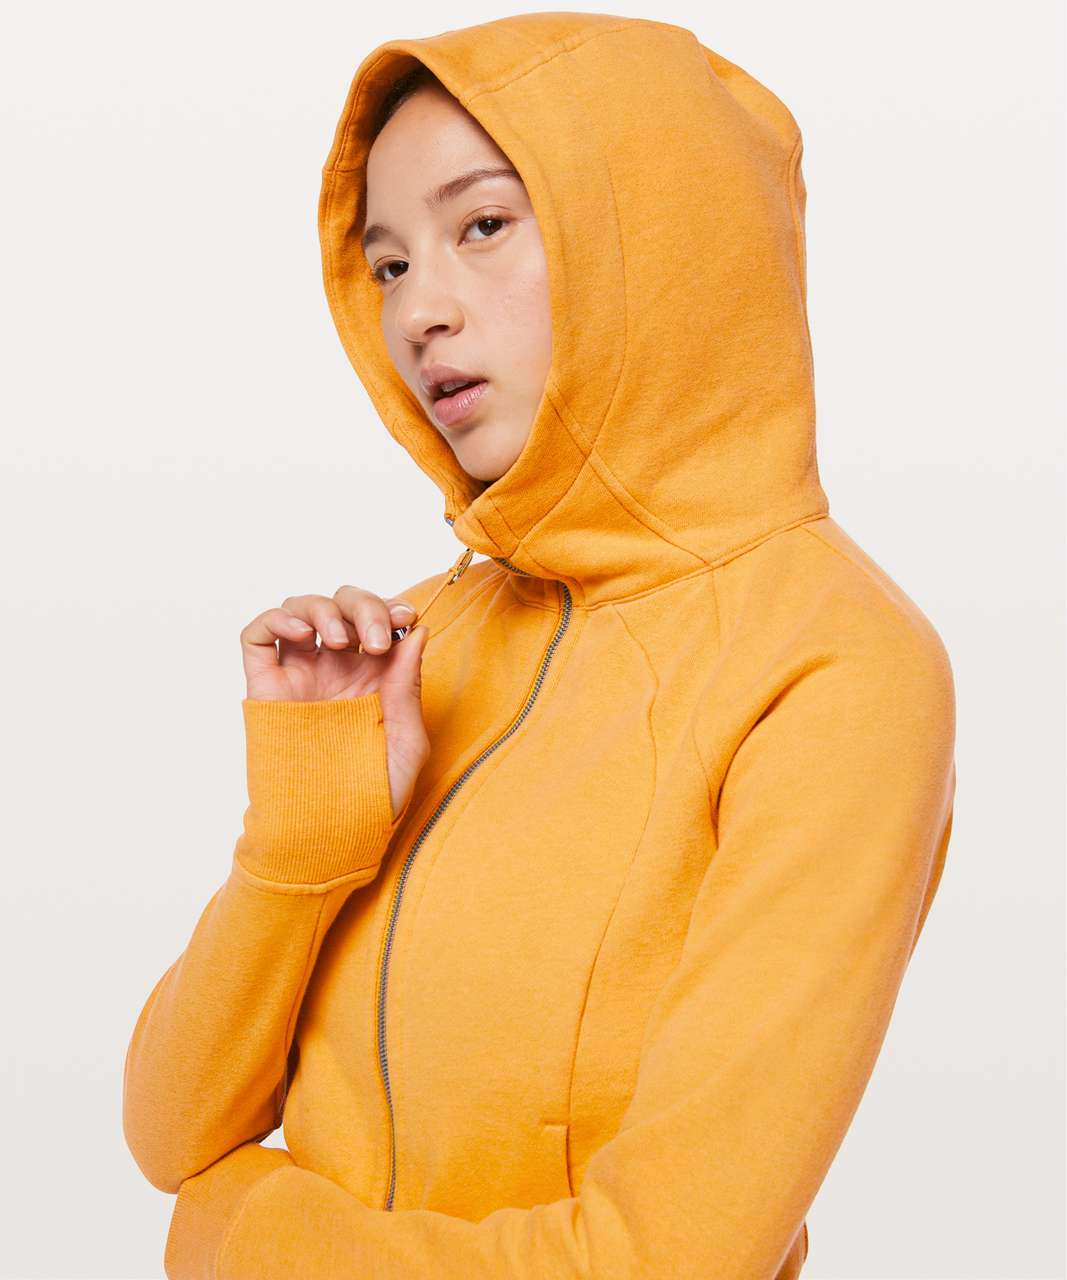 Lululemon Scuba Hoodie *Light Cotton Fleece - Heathered Honey Lemon